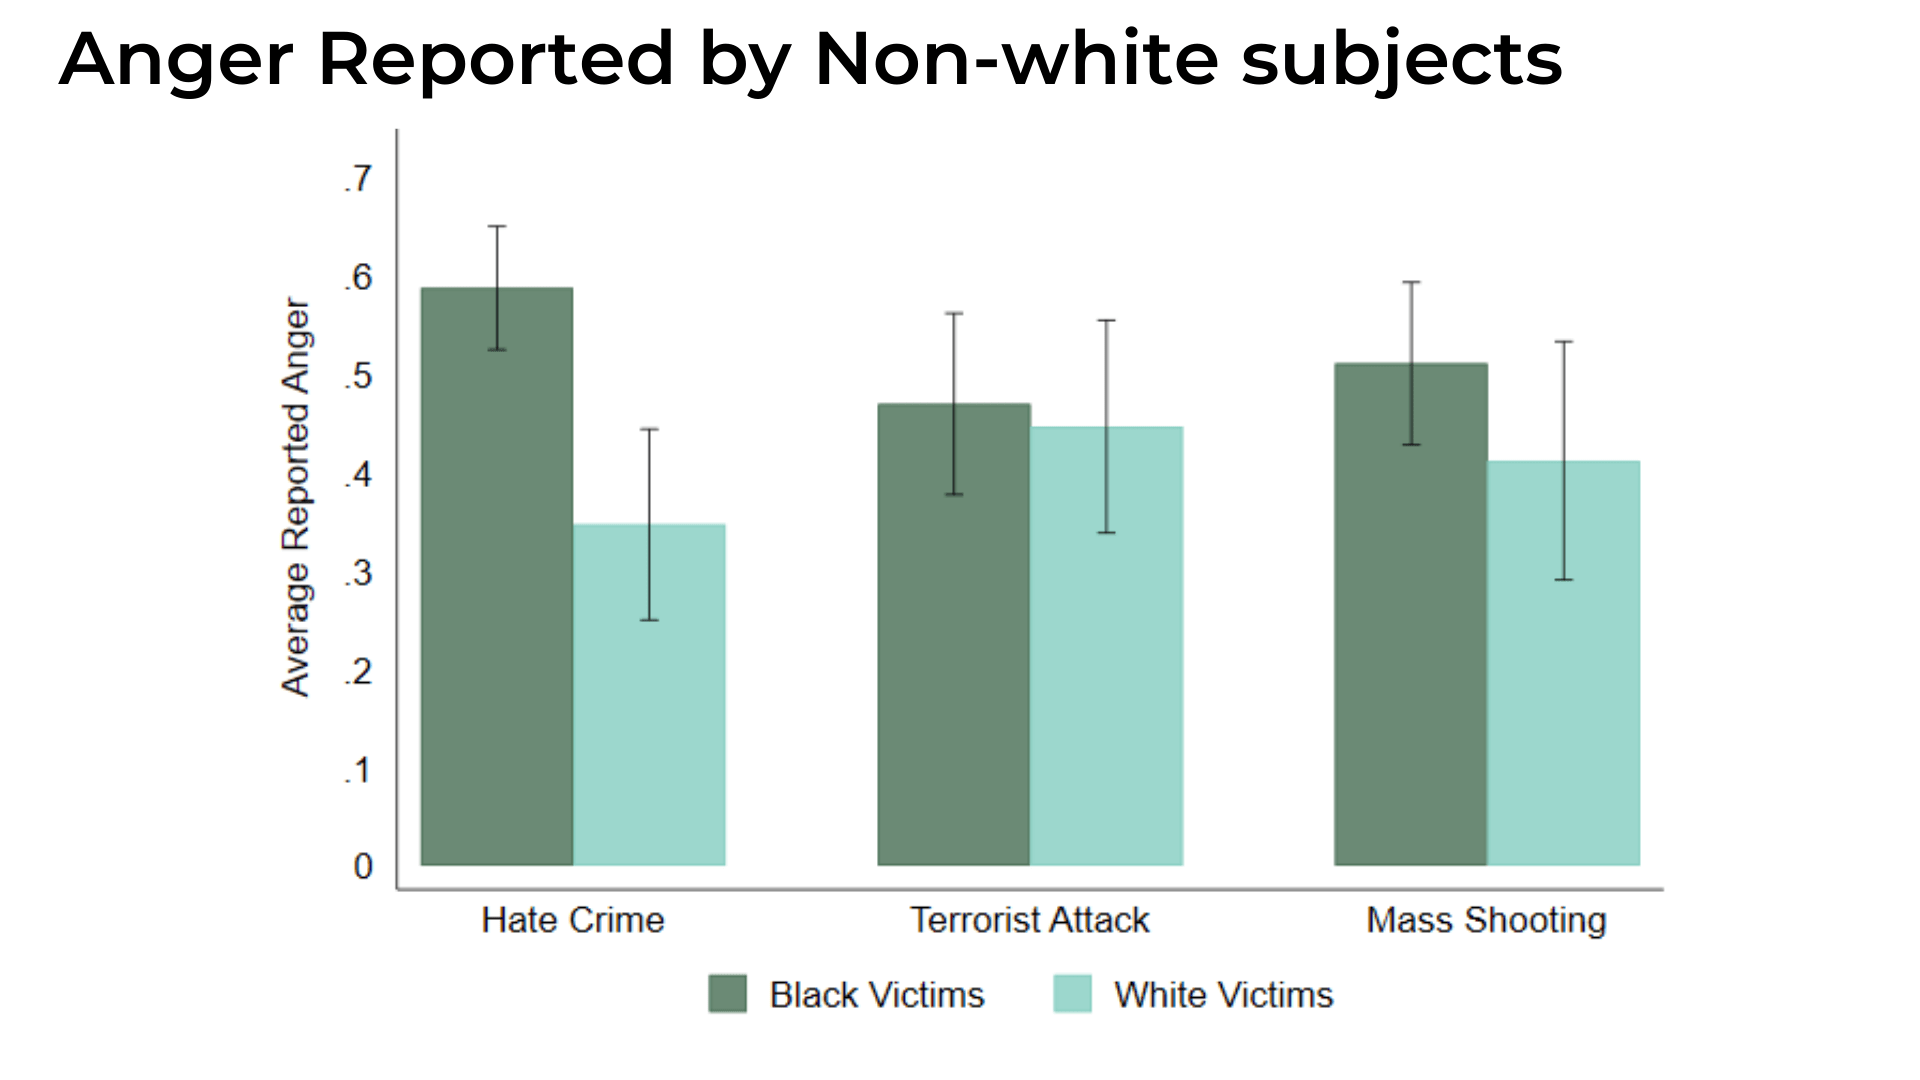 anger reported by non-white subjects